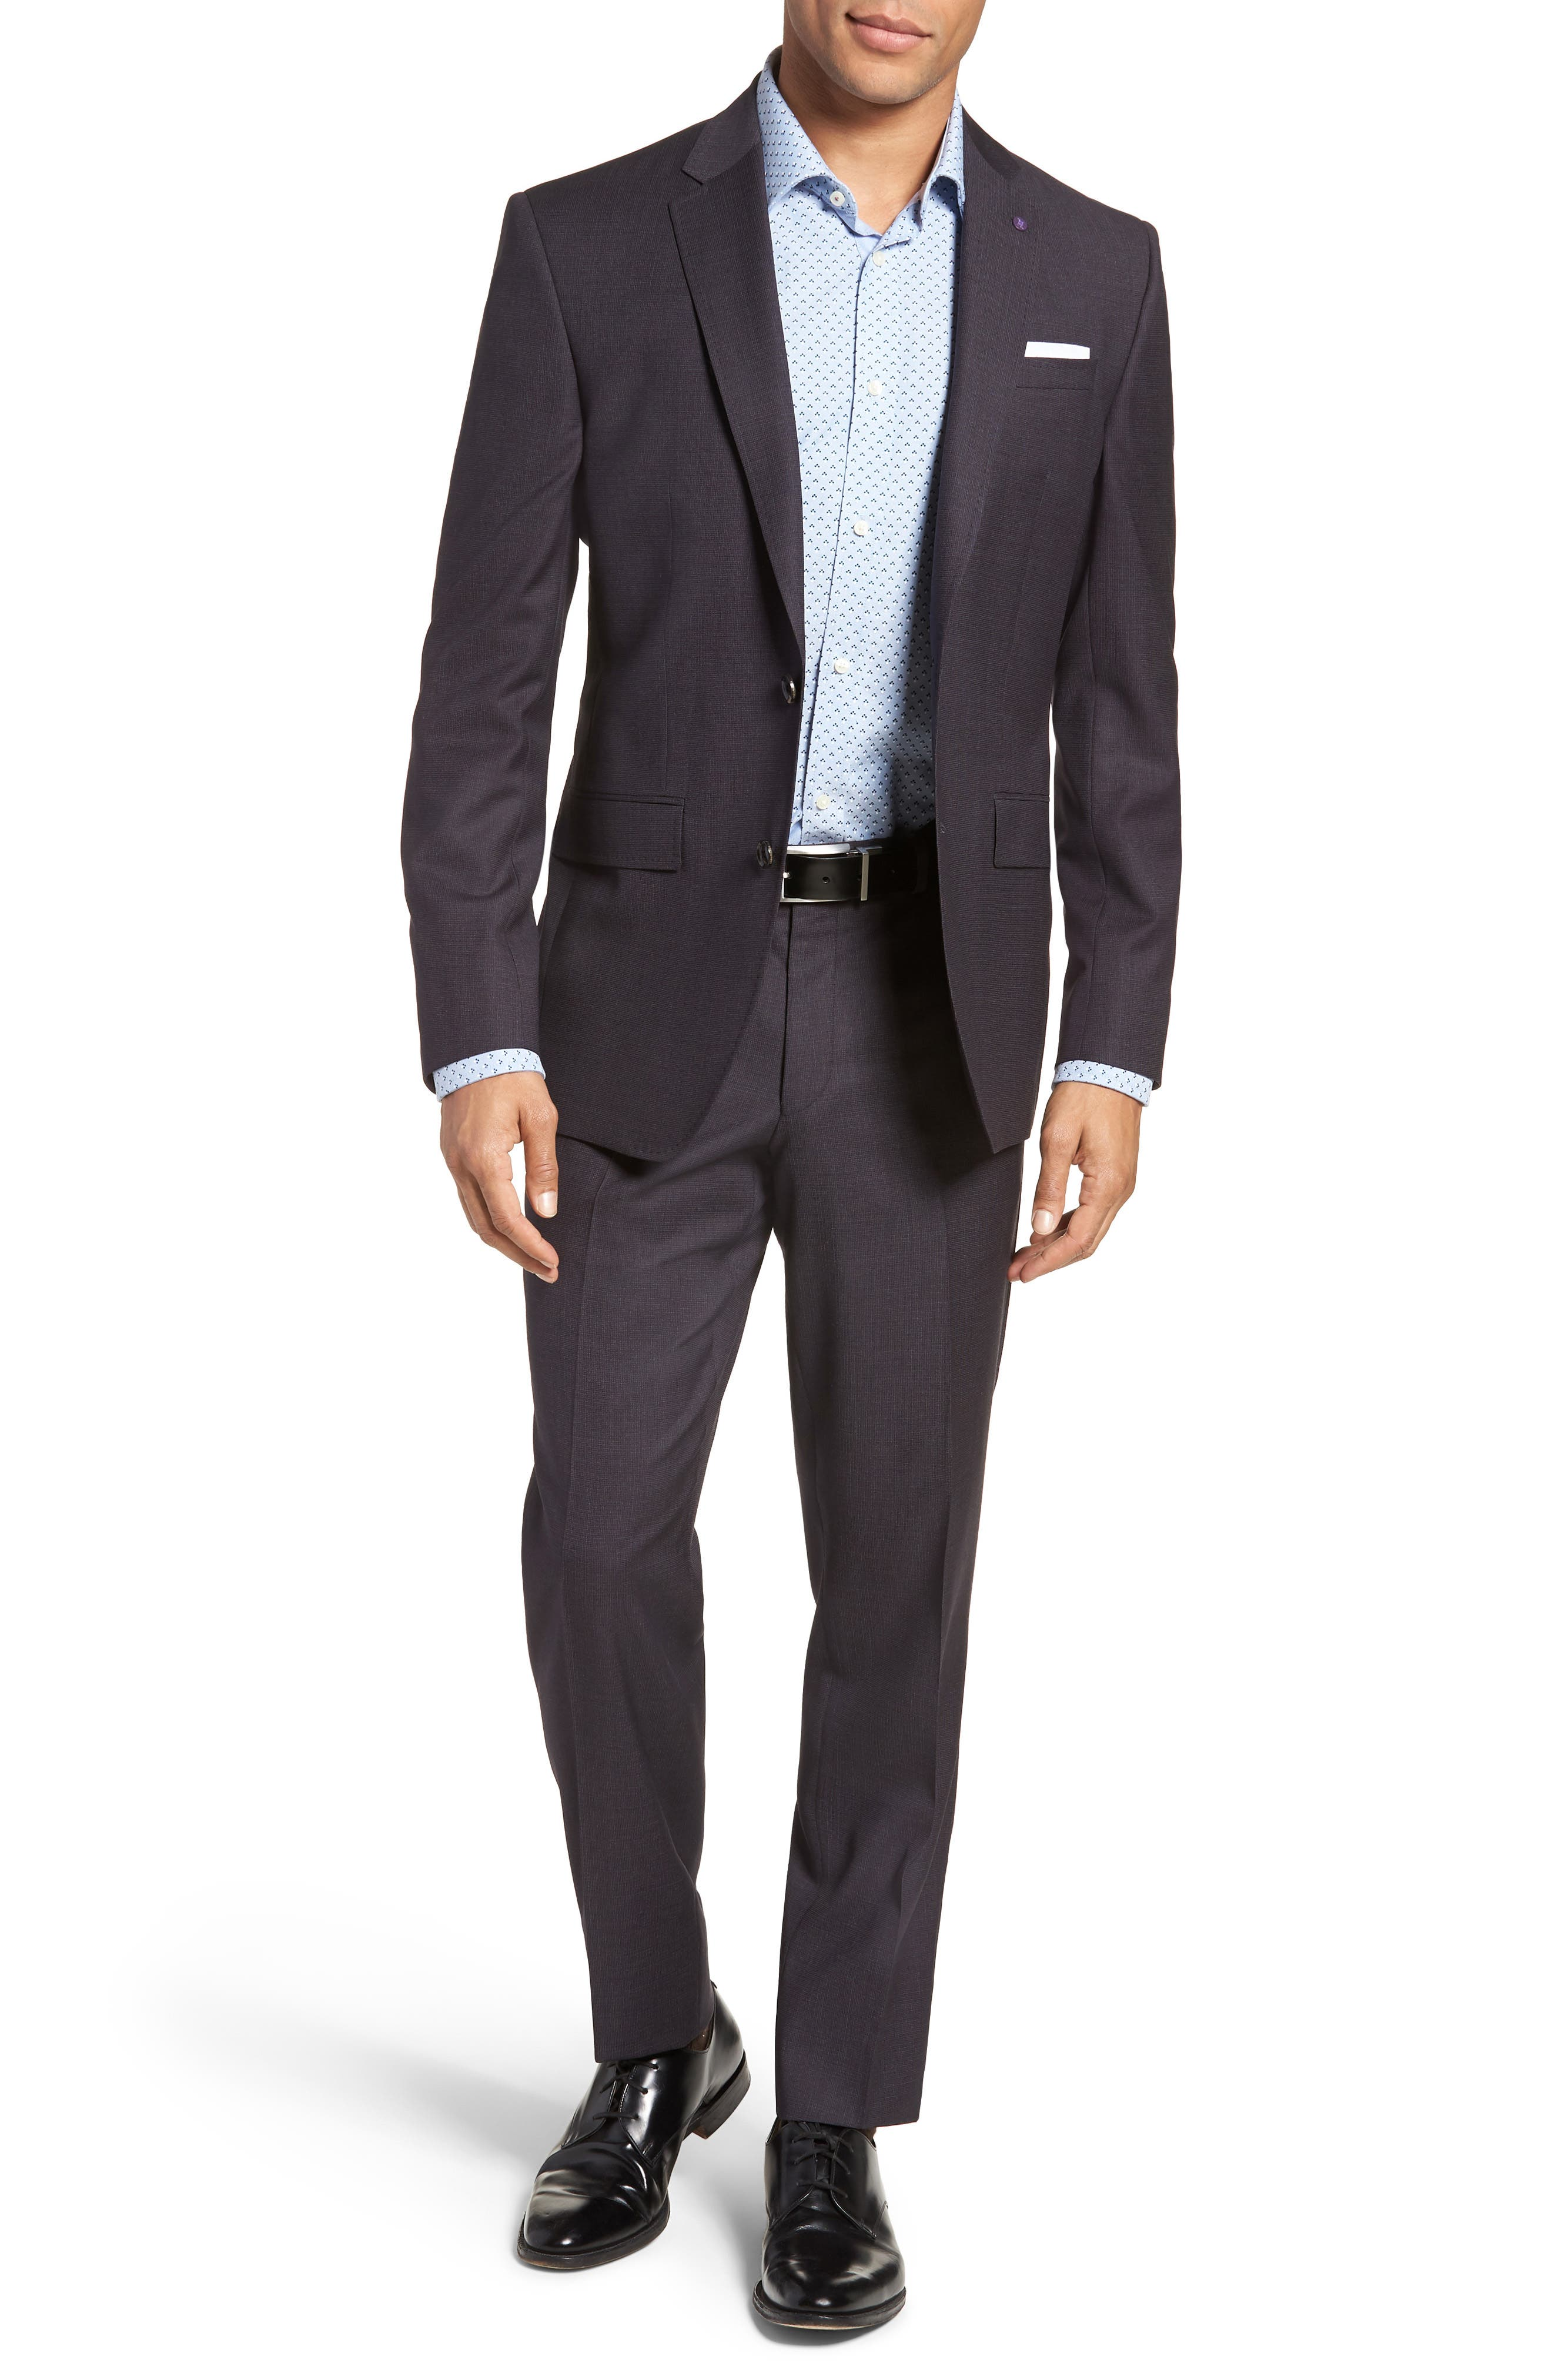 Jay Trim Fit Solid Wool Suit,                         Main,                         color, Brown Multi